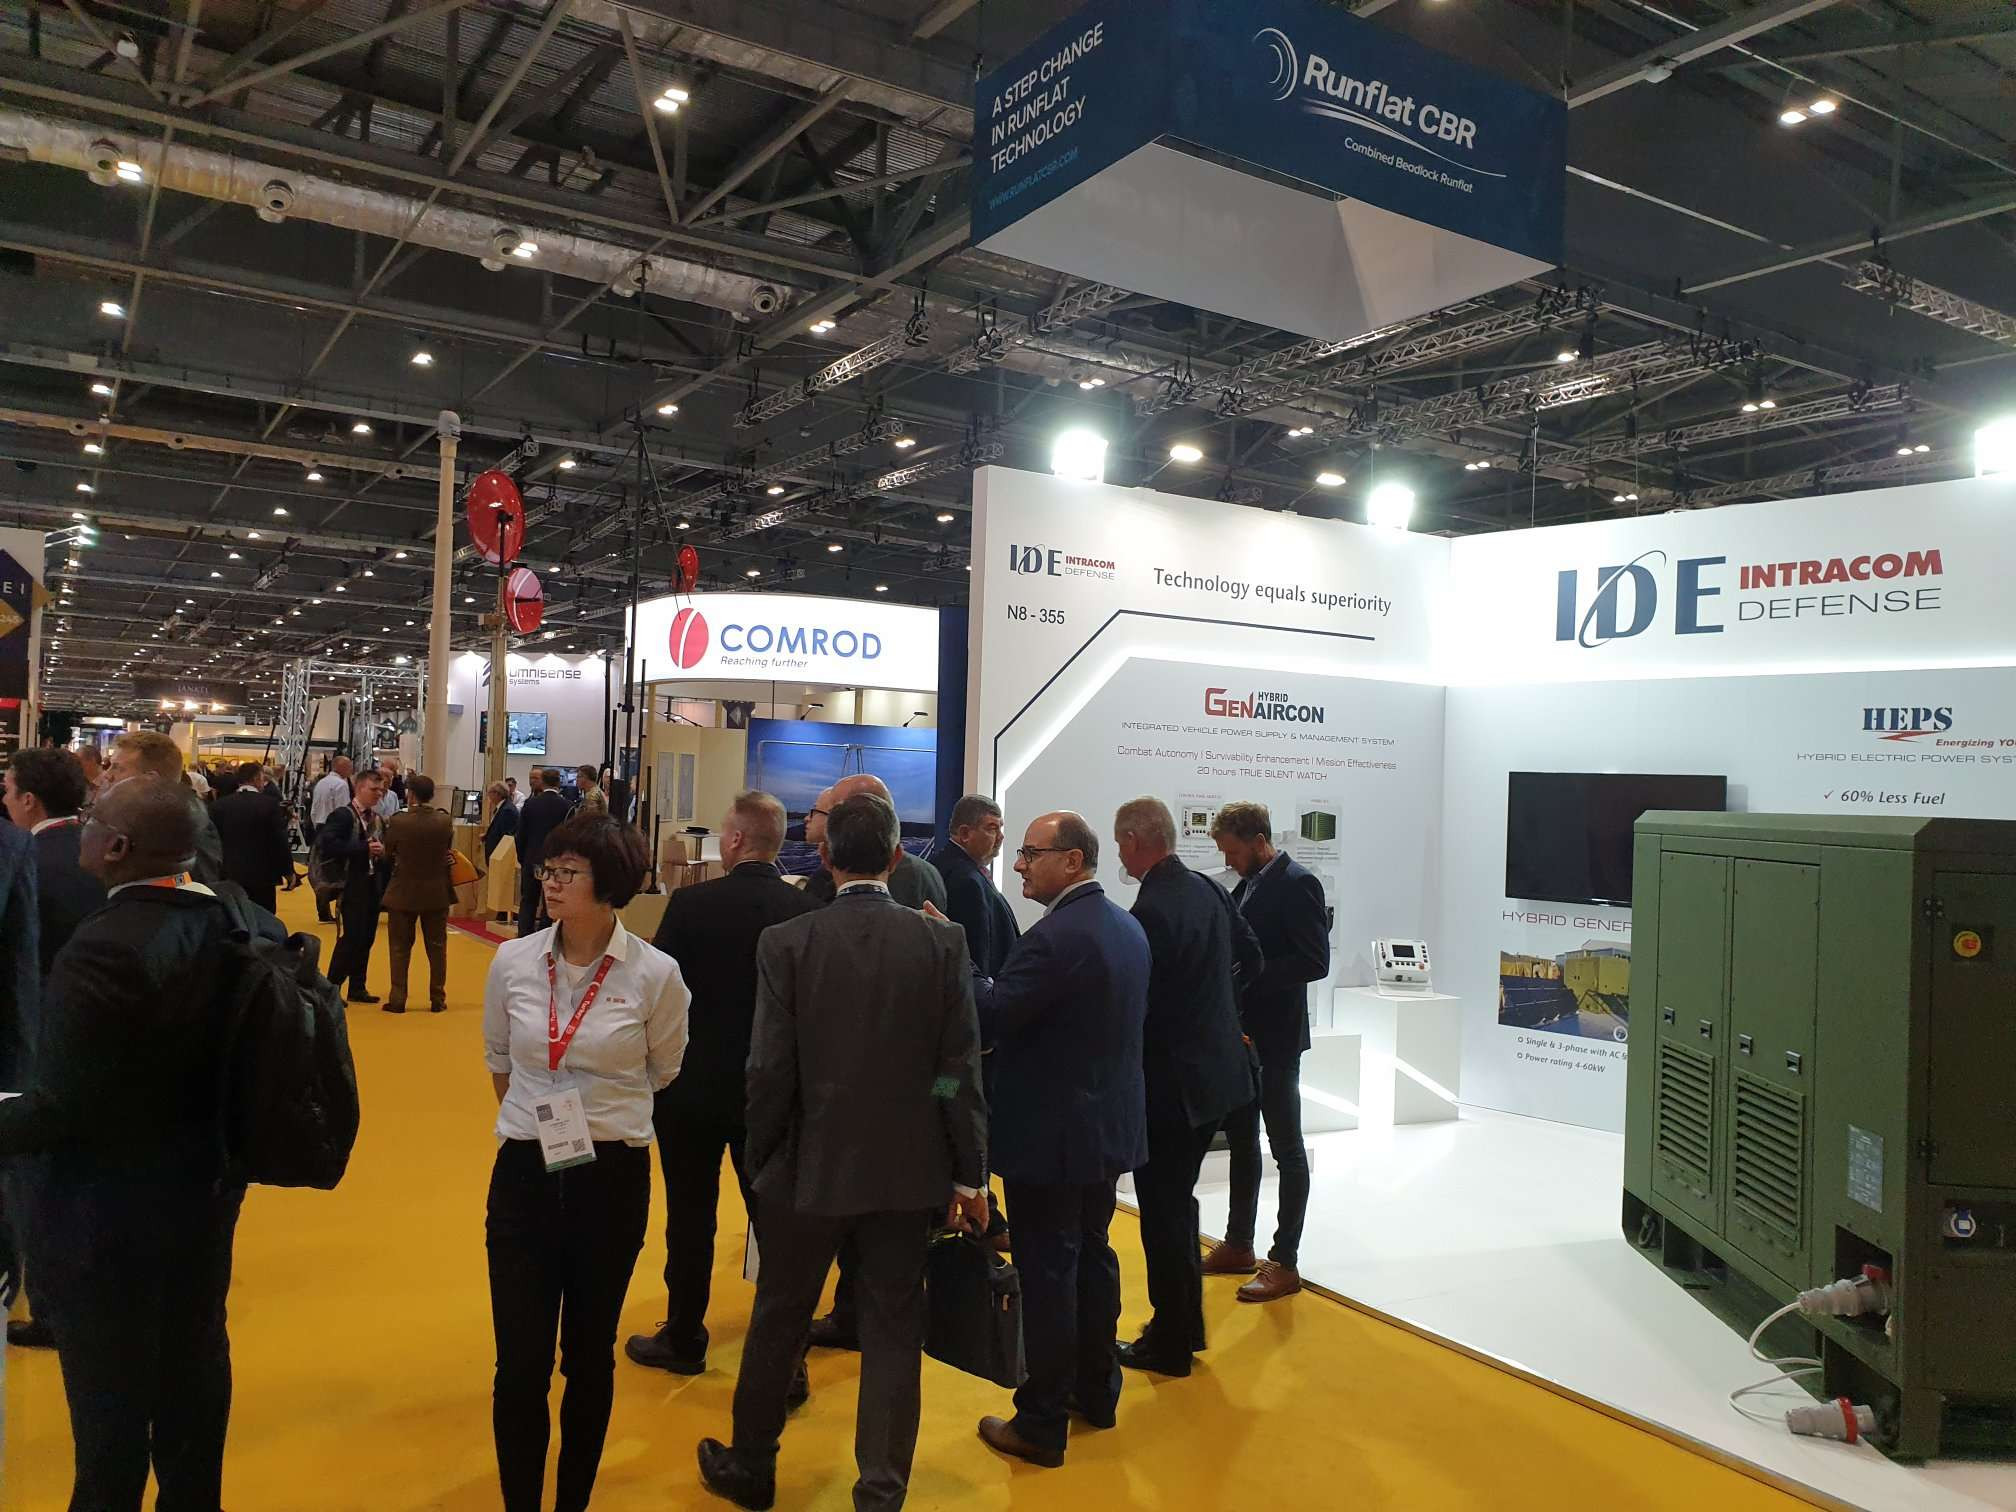 IDE Intracom Defence DSEI 2019 London